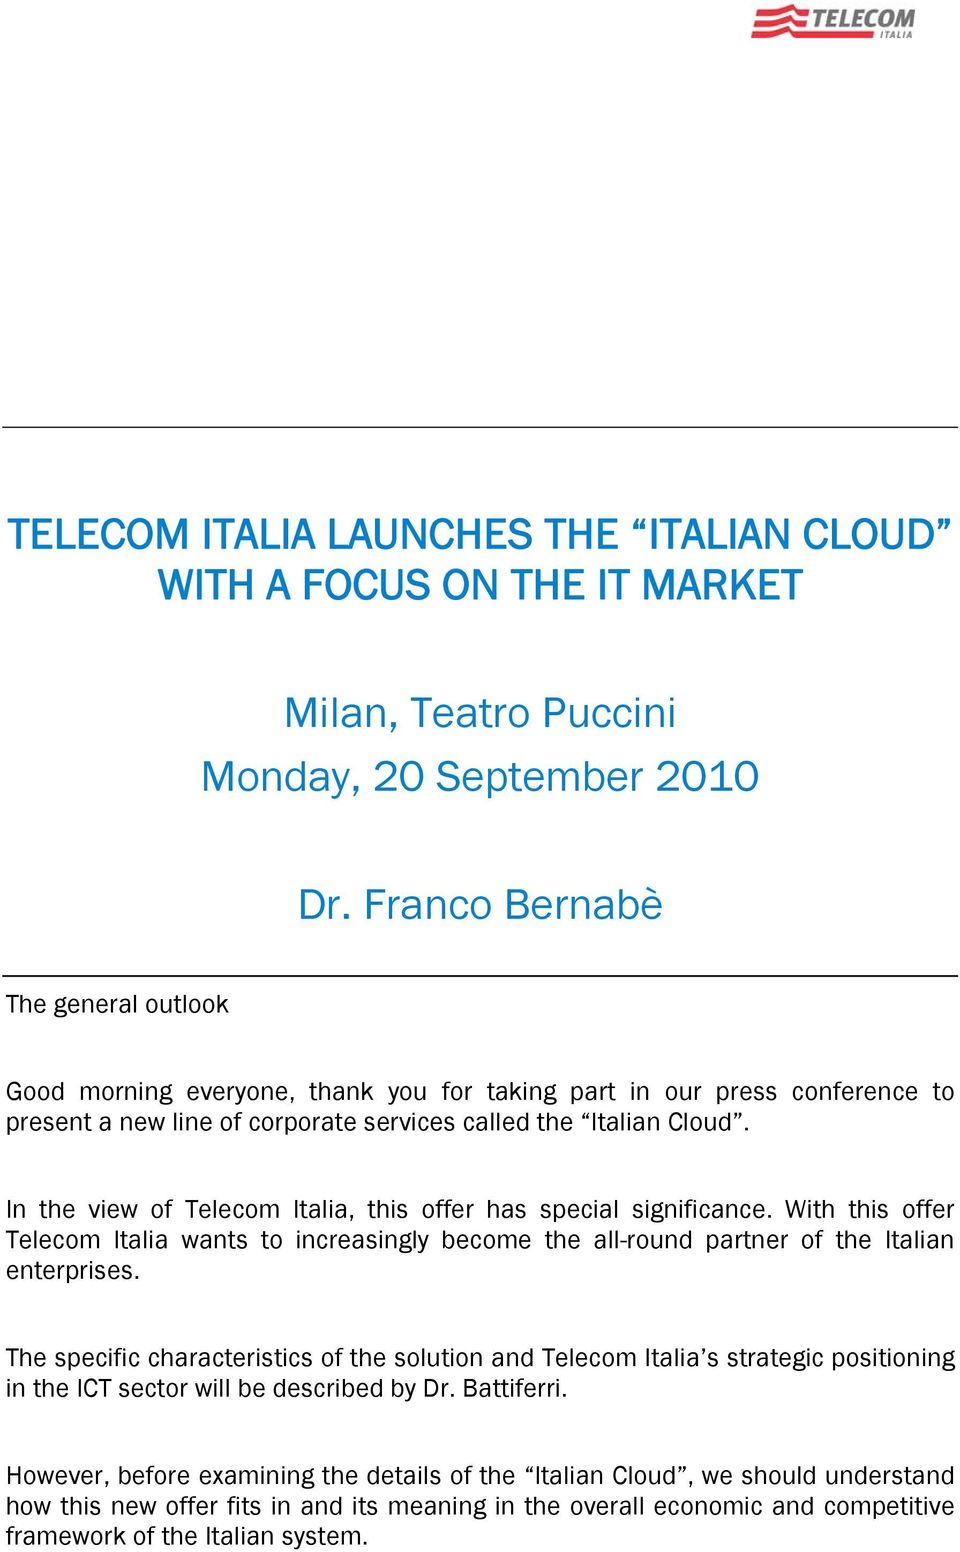 With this offer Telecom Italia wants to increasingly become the all-round partner of the Italian enterprises.